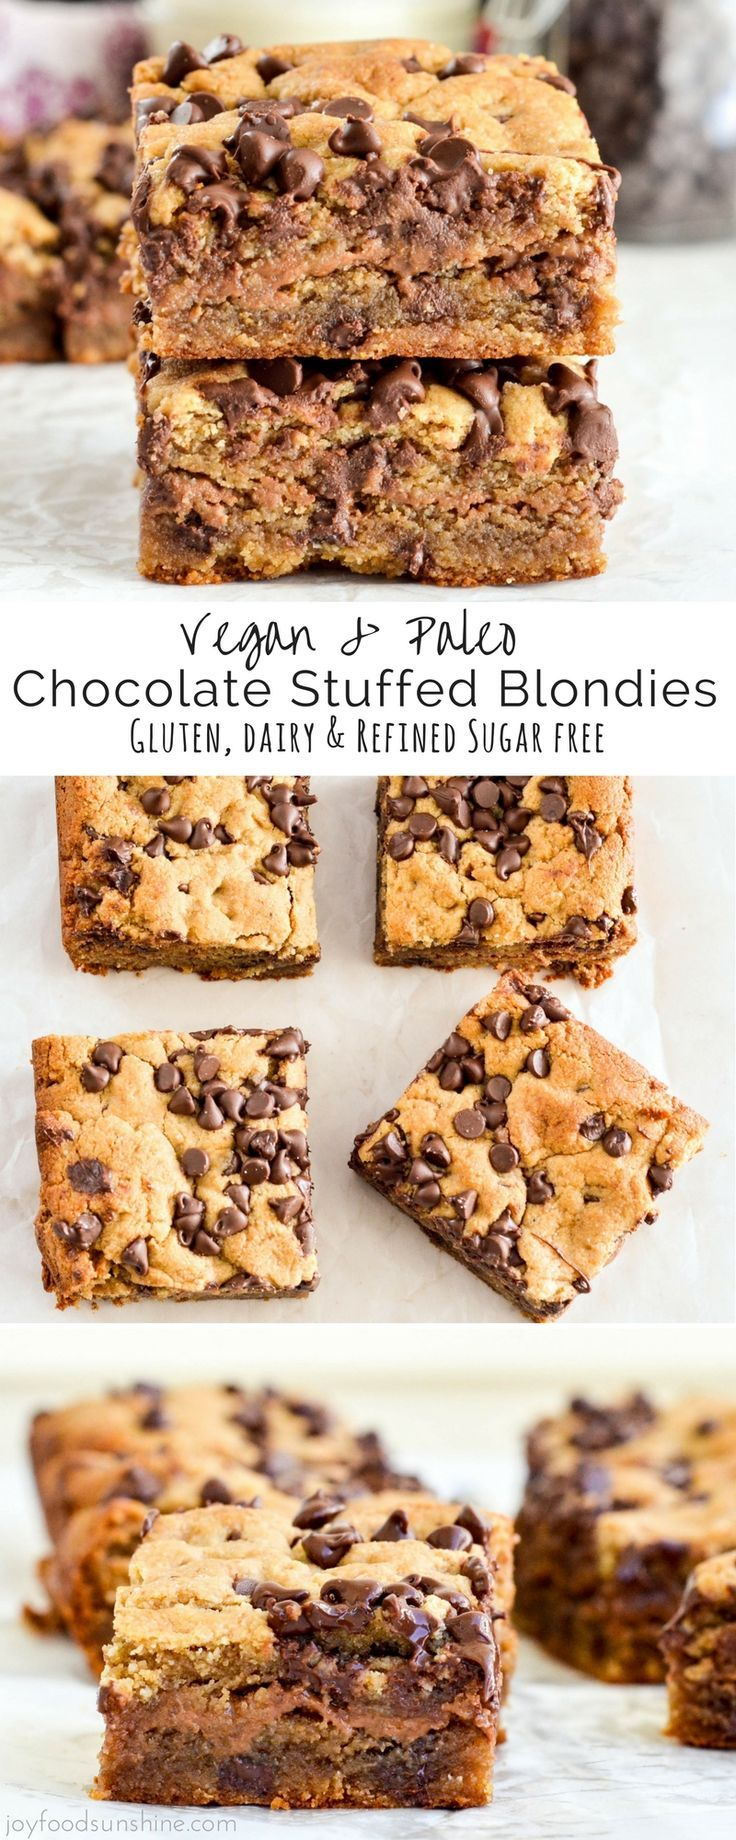 Vegan Chocolate Stuffed Paleo Blondies! These blondies are an easy, healthy dessert that's ready in 30 minutes! Gluten-free, dairy-free & refined sugar free!